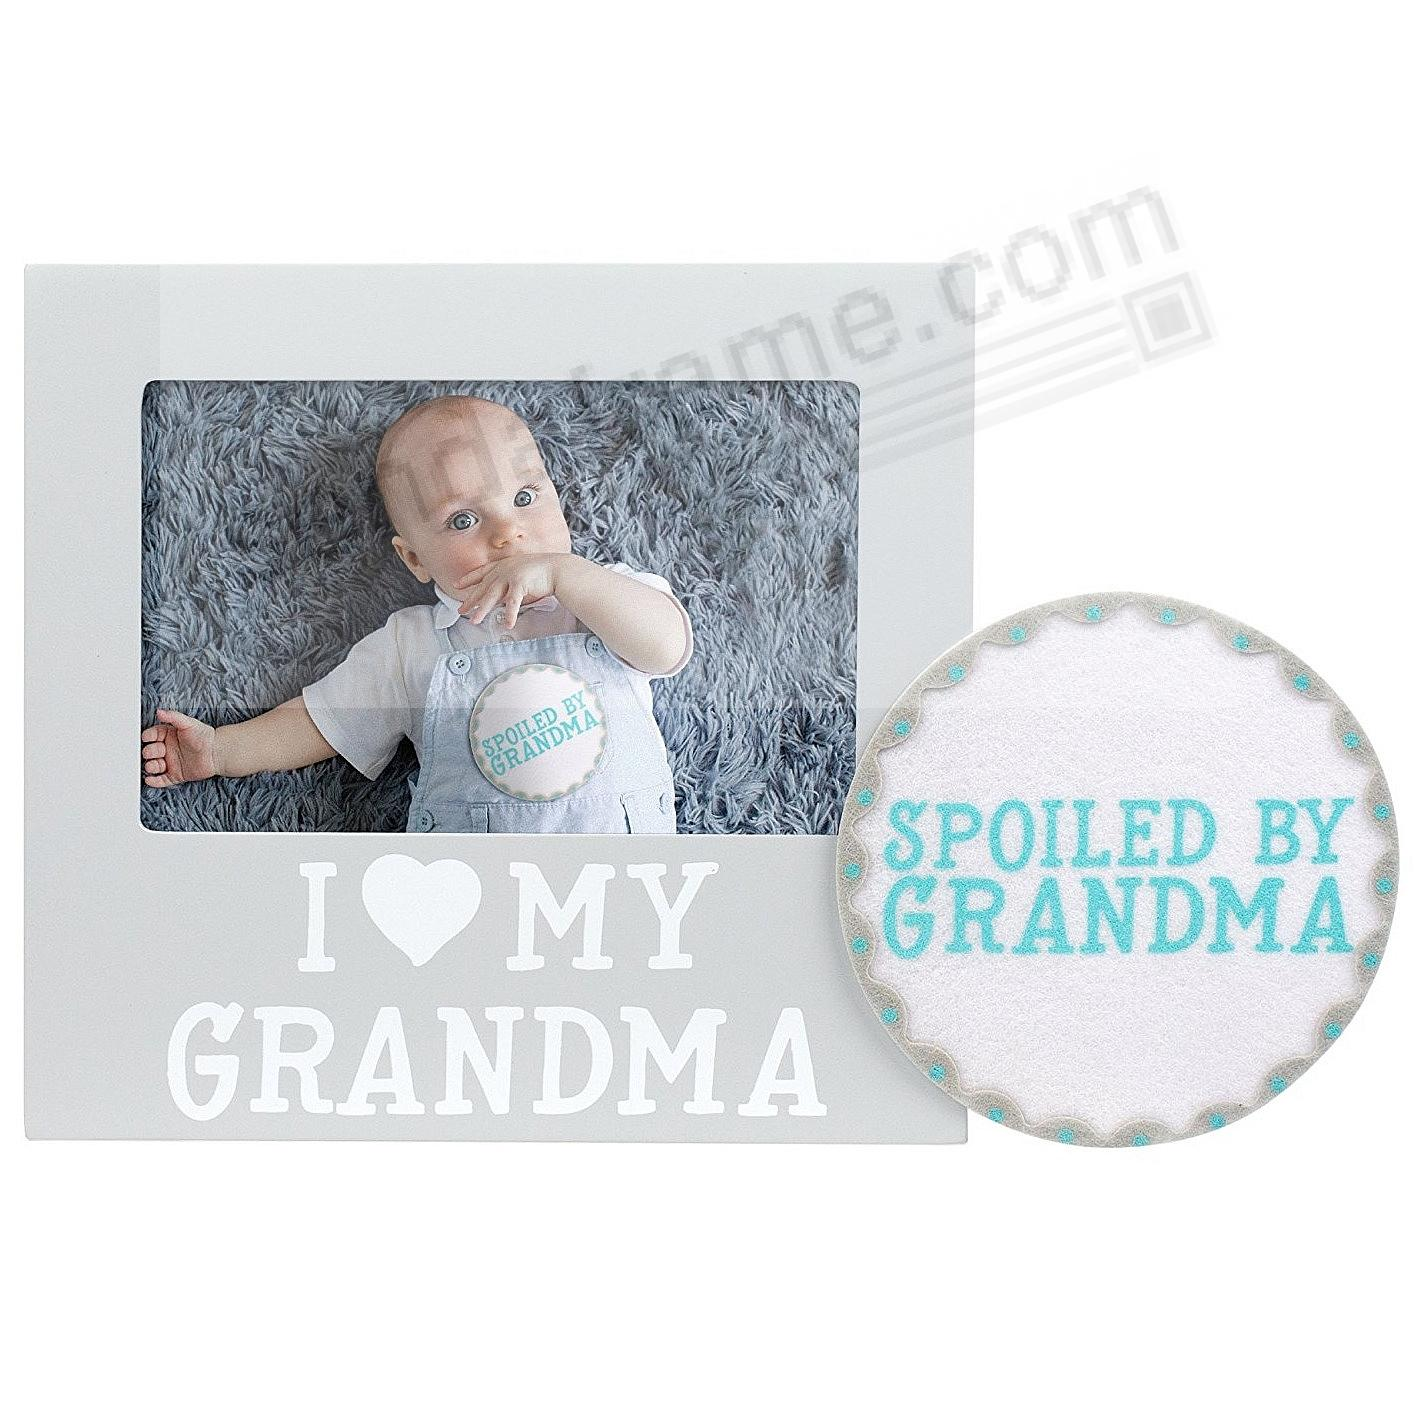 I {HEART} MY GRANDMA Gray keepsake frame w/Belly Sticker by Pearhead®